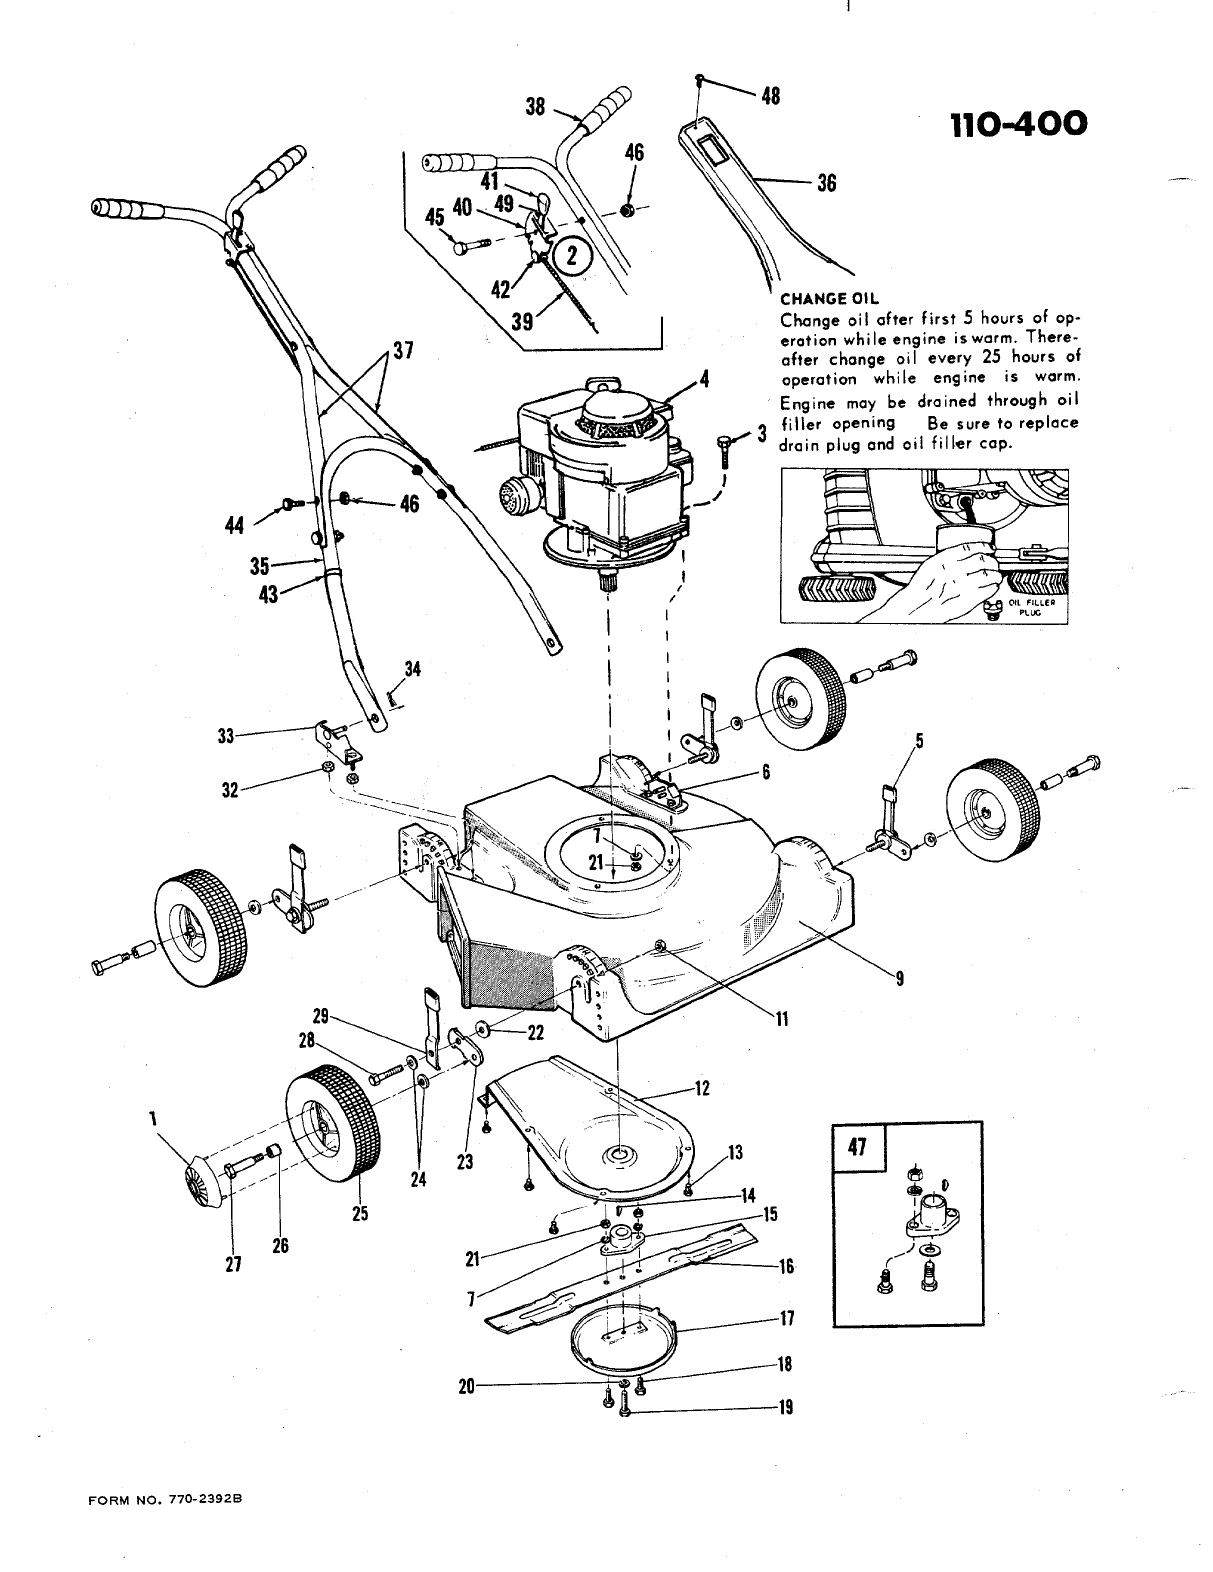 Page 2 of Bolens Lawn Mower 110-400 User Guide